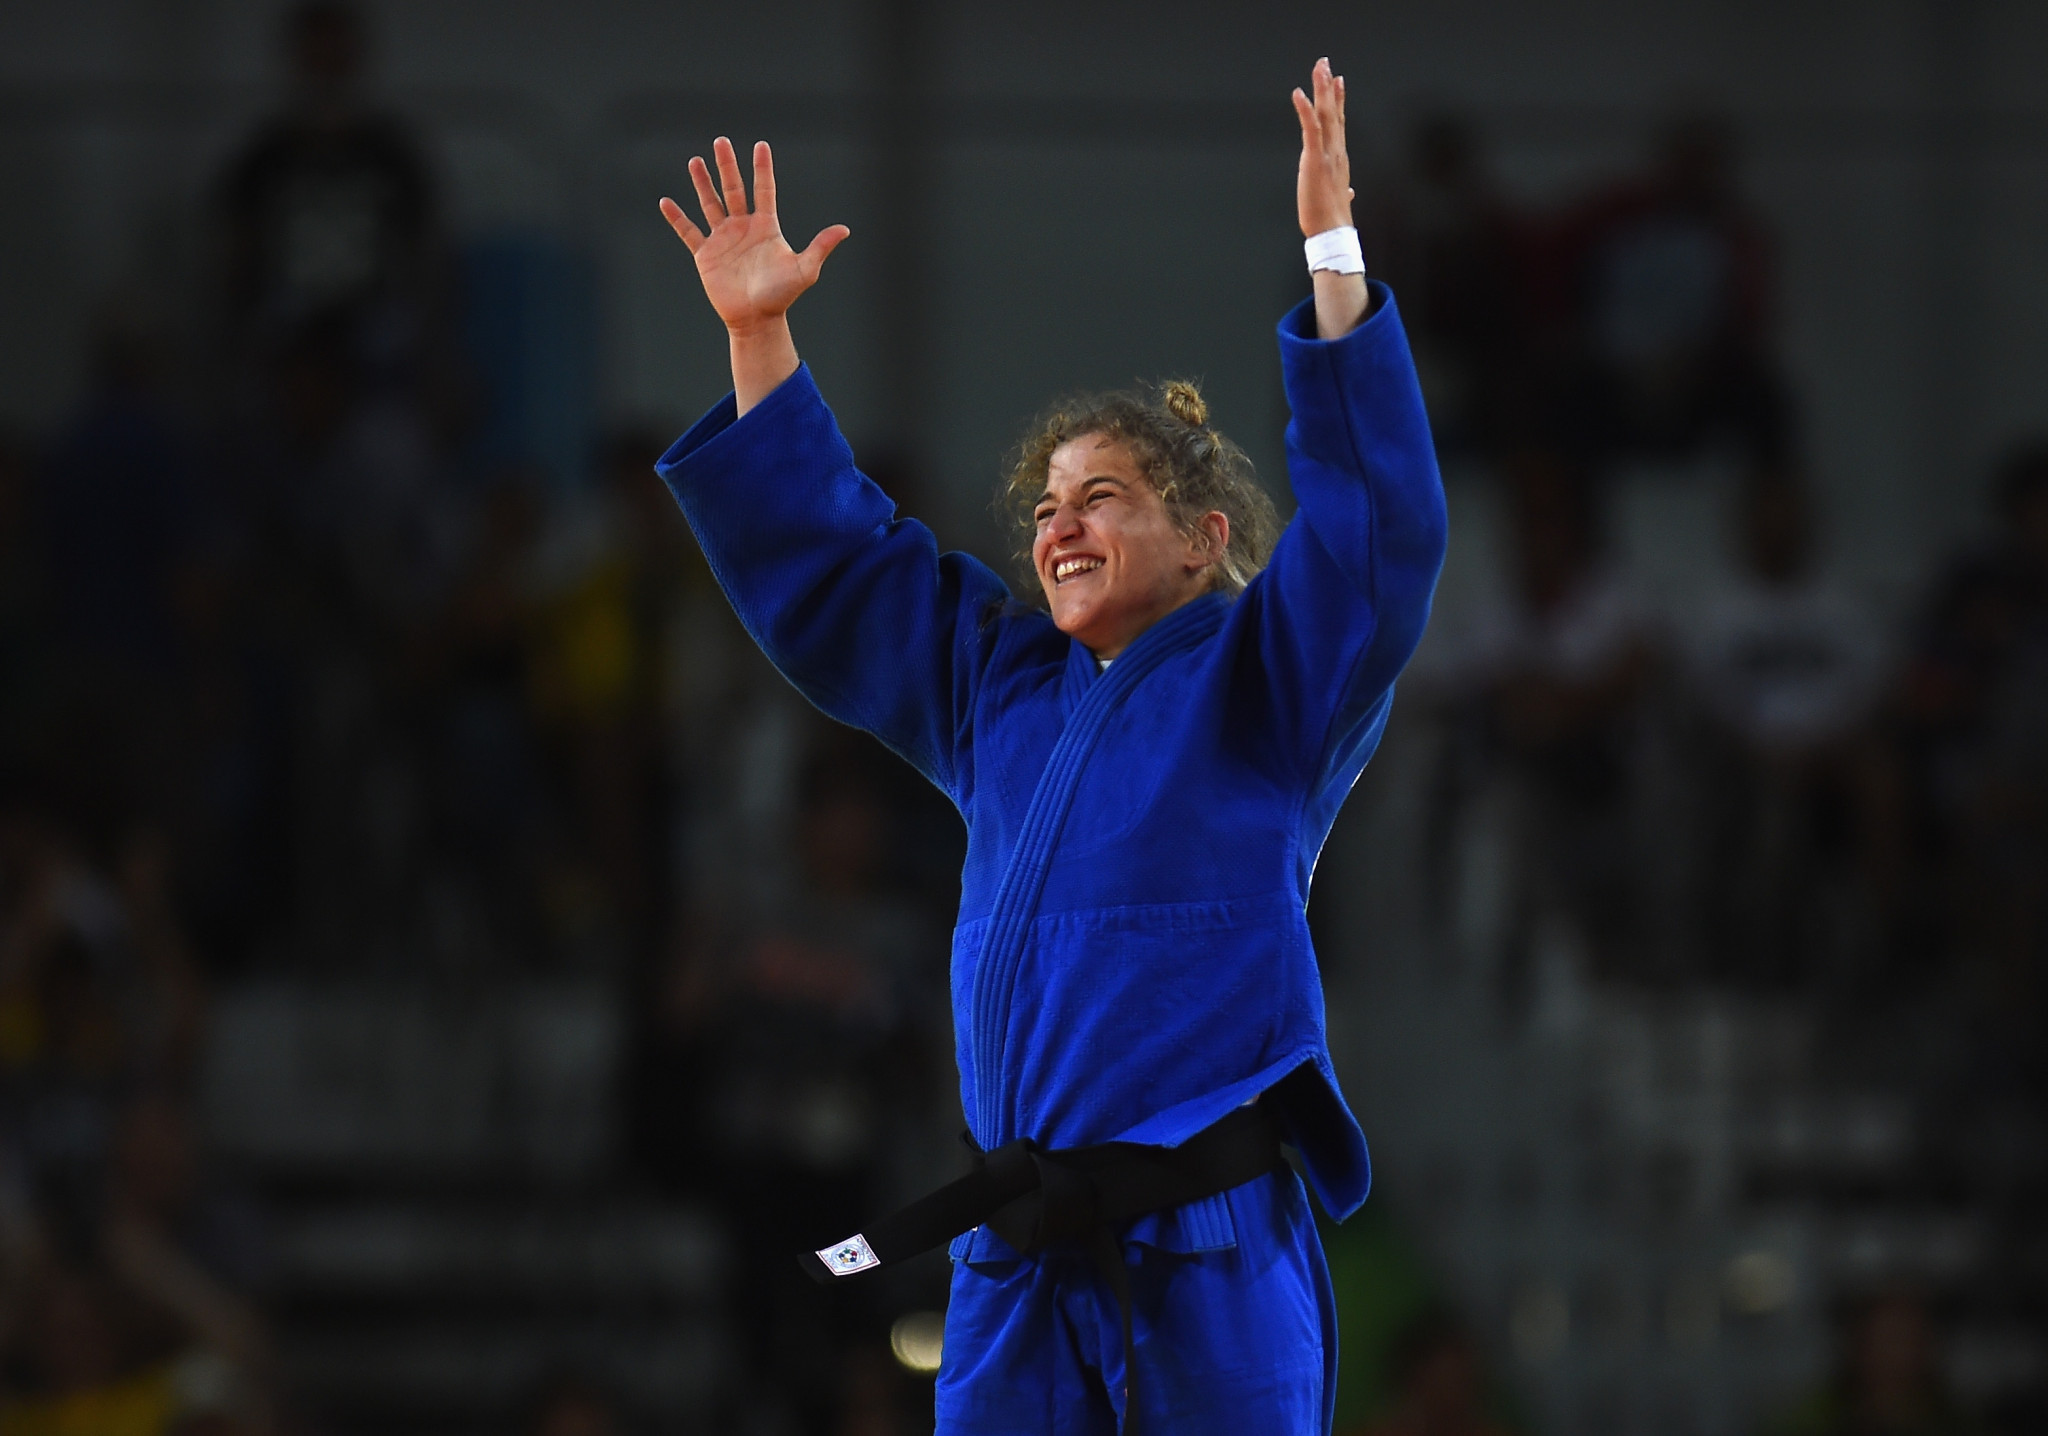 Argentina's Paula Pareto came out on top in the women's under-48kg category ©Getty Images